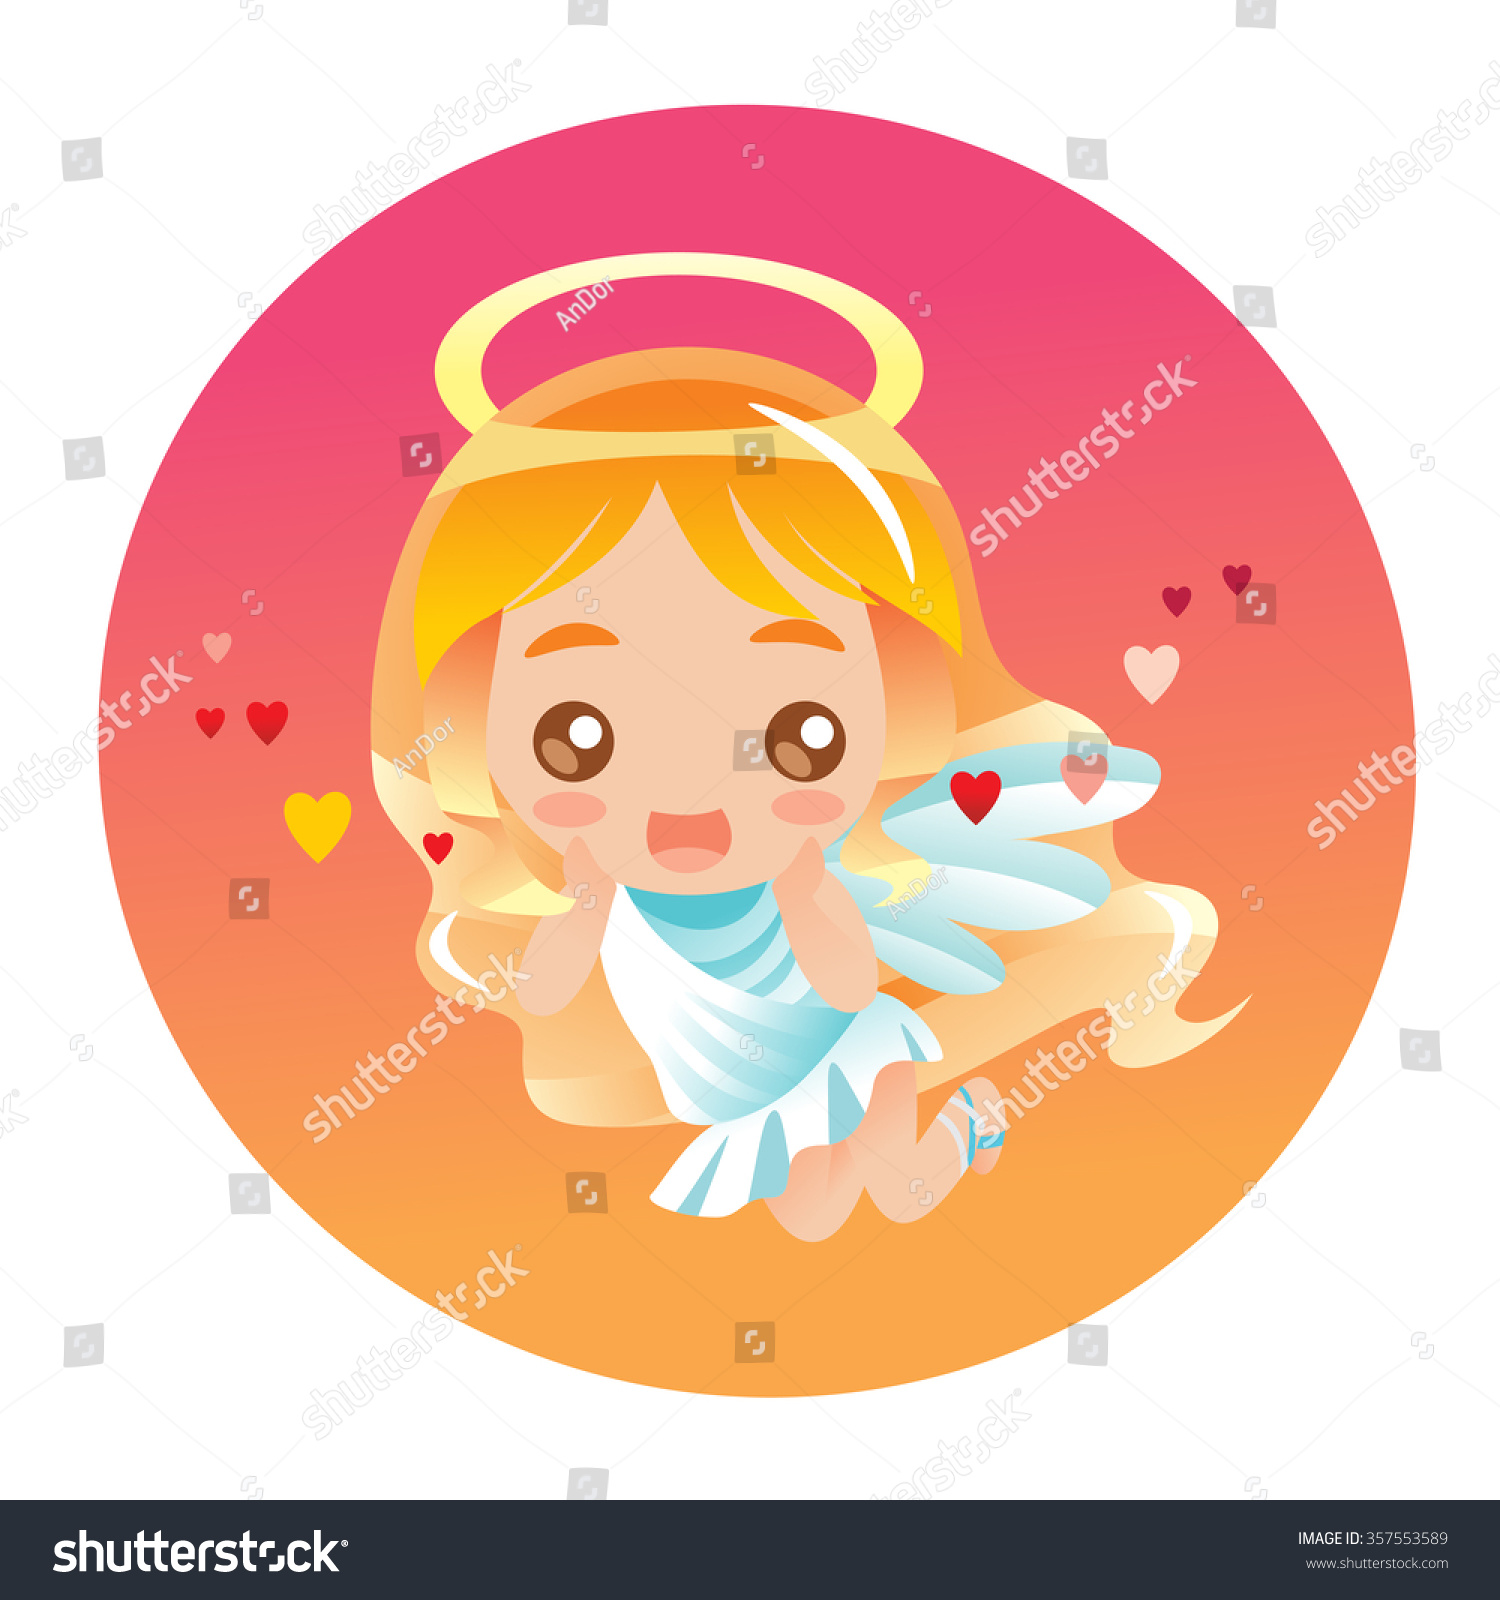 Cute Little Angel In Japanese Anime Style Stock Vector ...